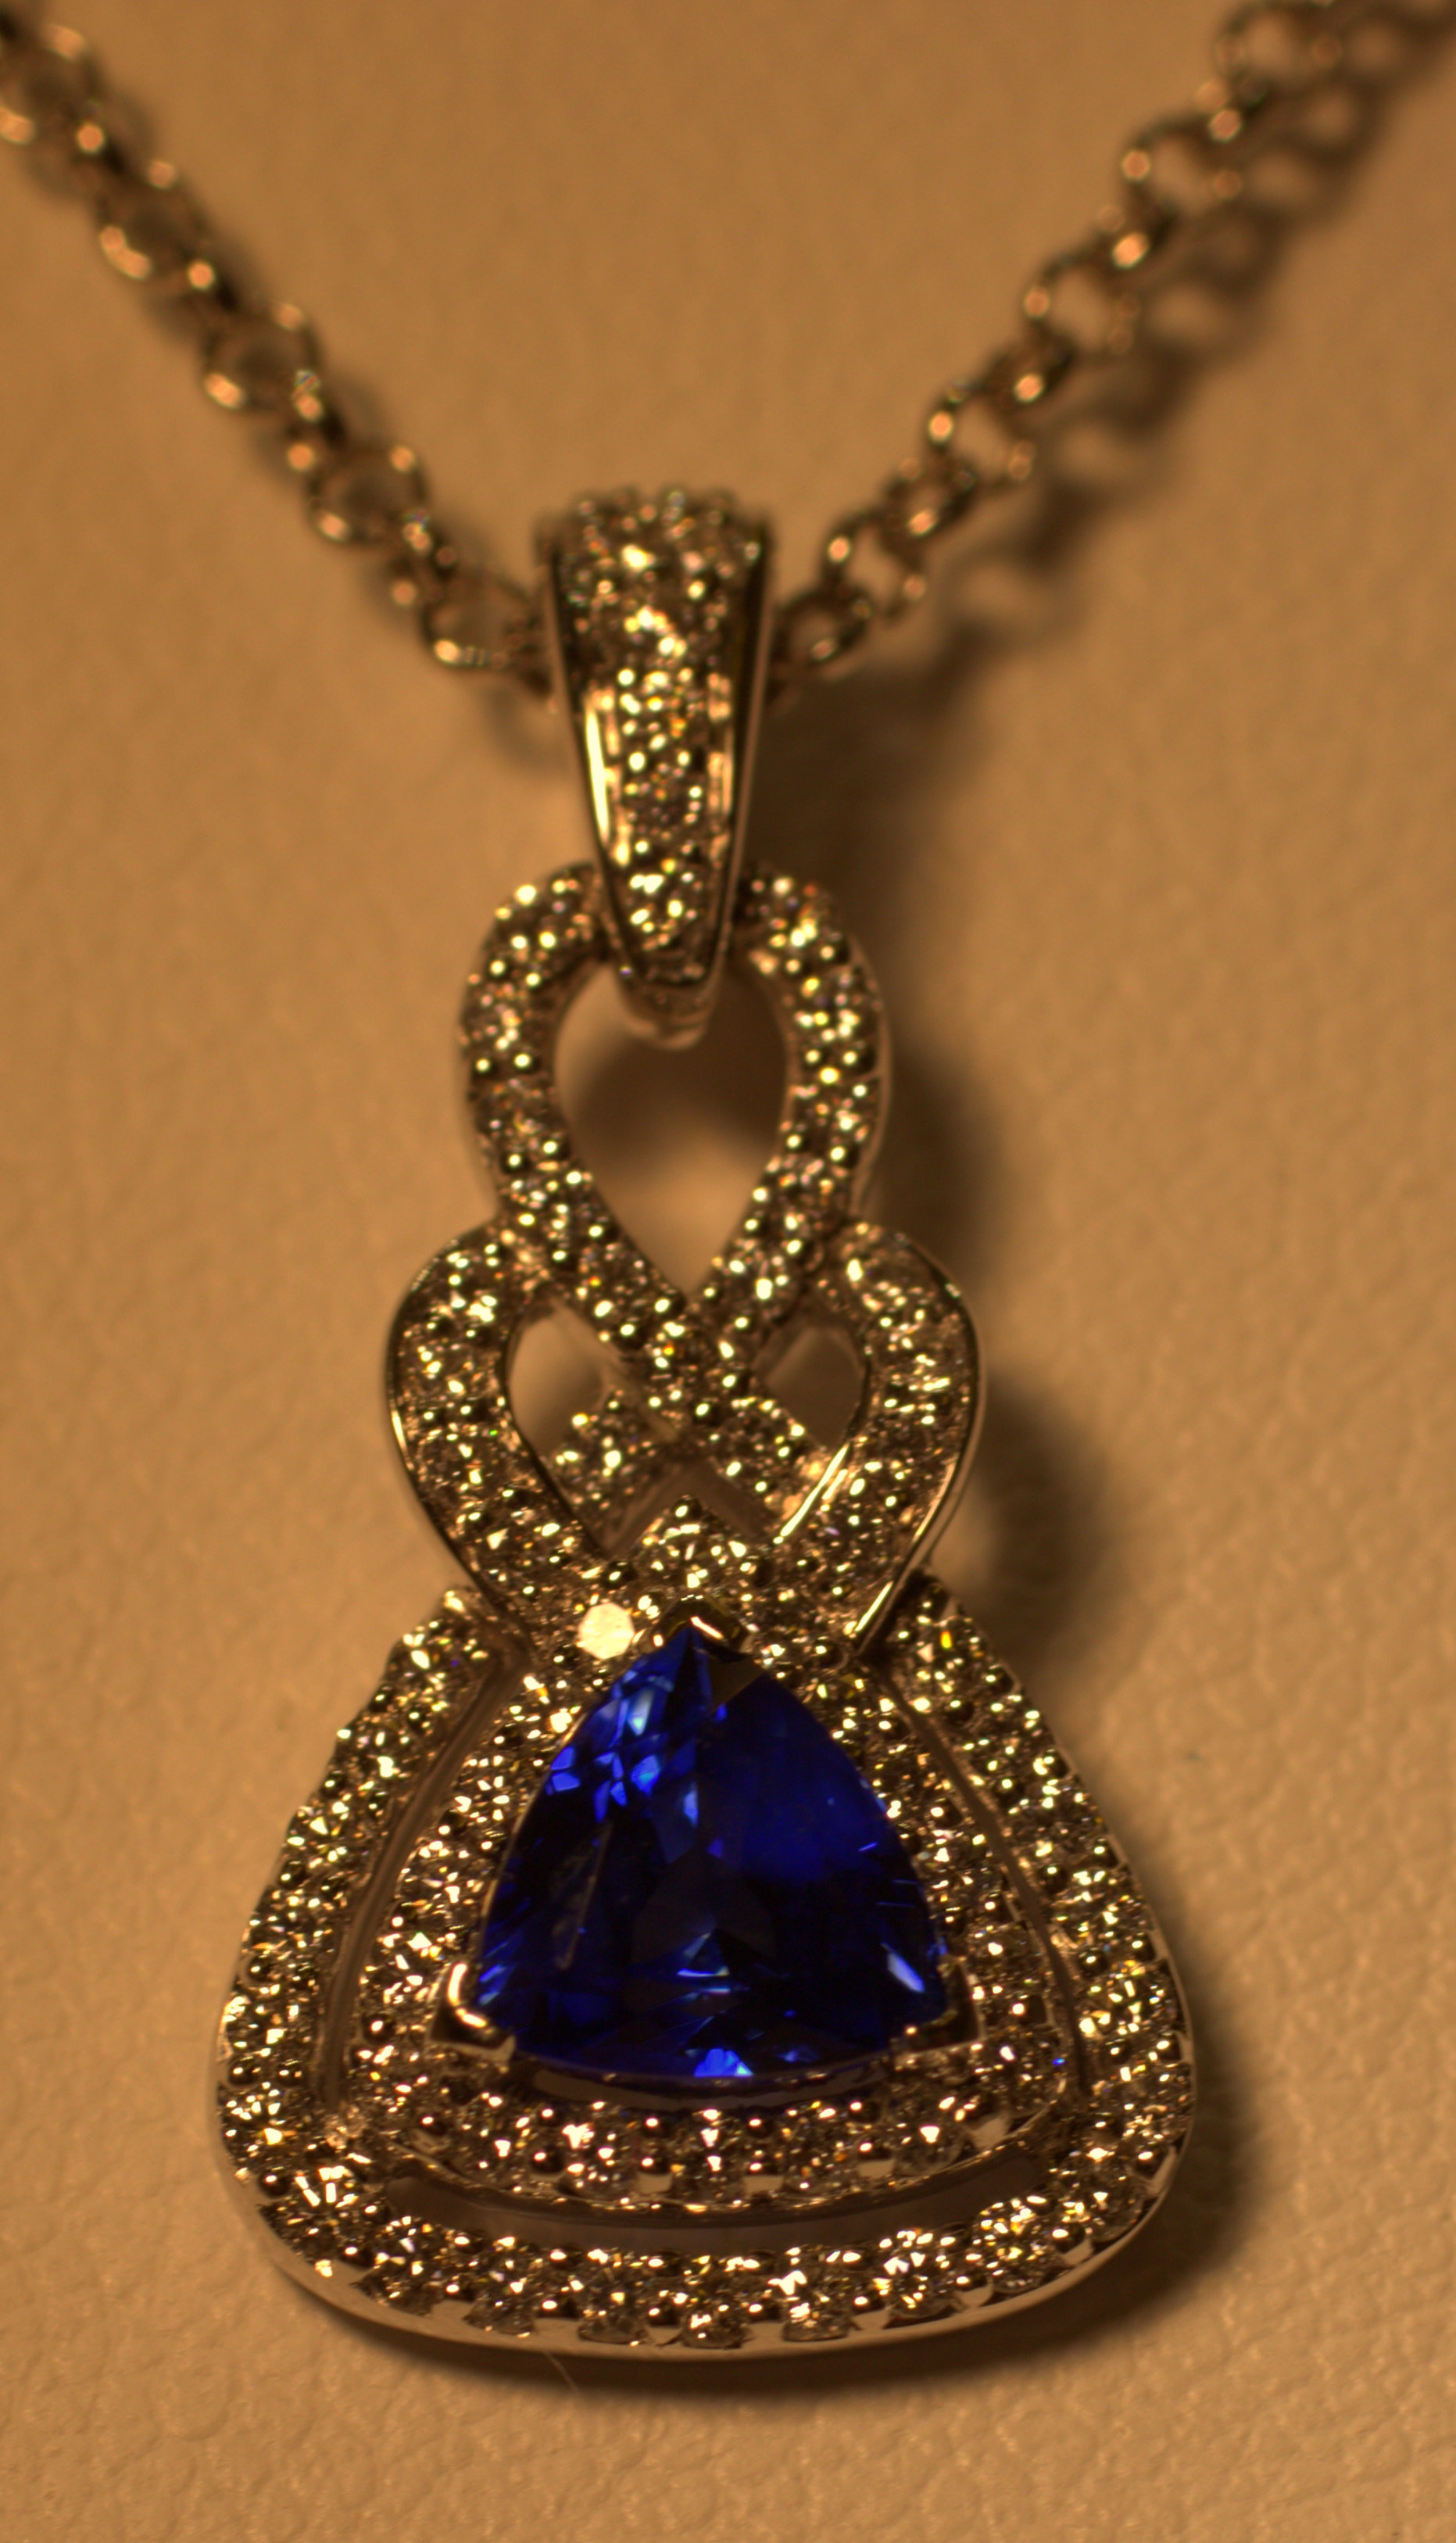 Vibrant blue sapphire and diamond pendant. This pendant has a beautiful blue sapphire that sparkles almost like a diamond. It has an ideal blue color with an intricate diamond twist just to bring out the glisten in the gemstone. This piece will be an eye catcher from across the room.  $3500